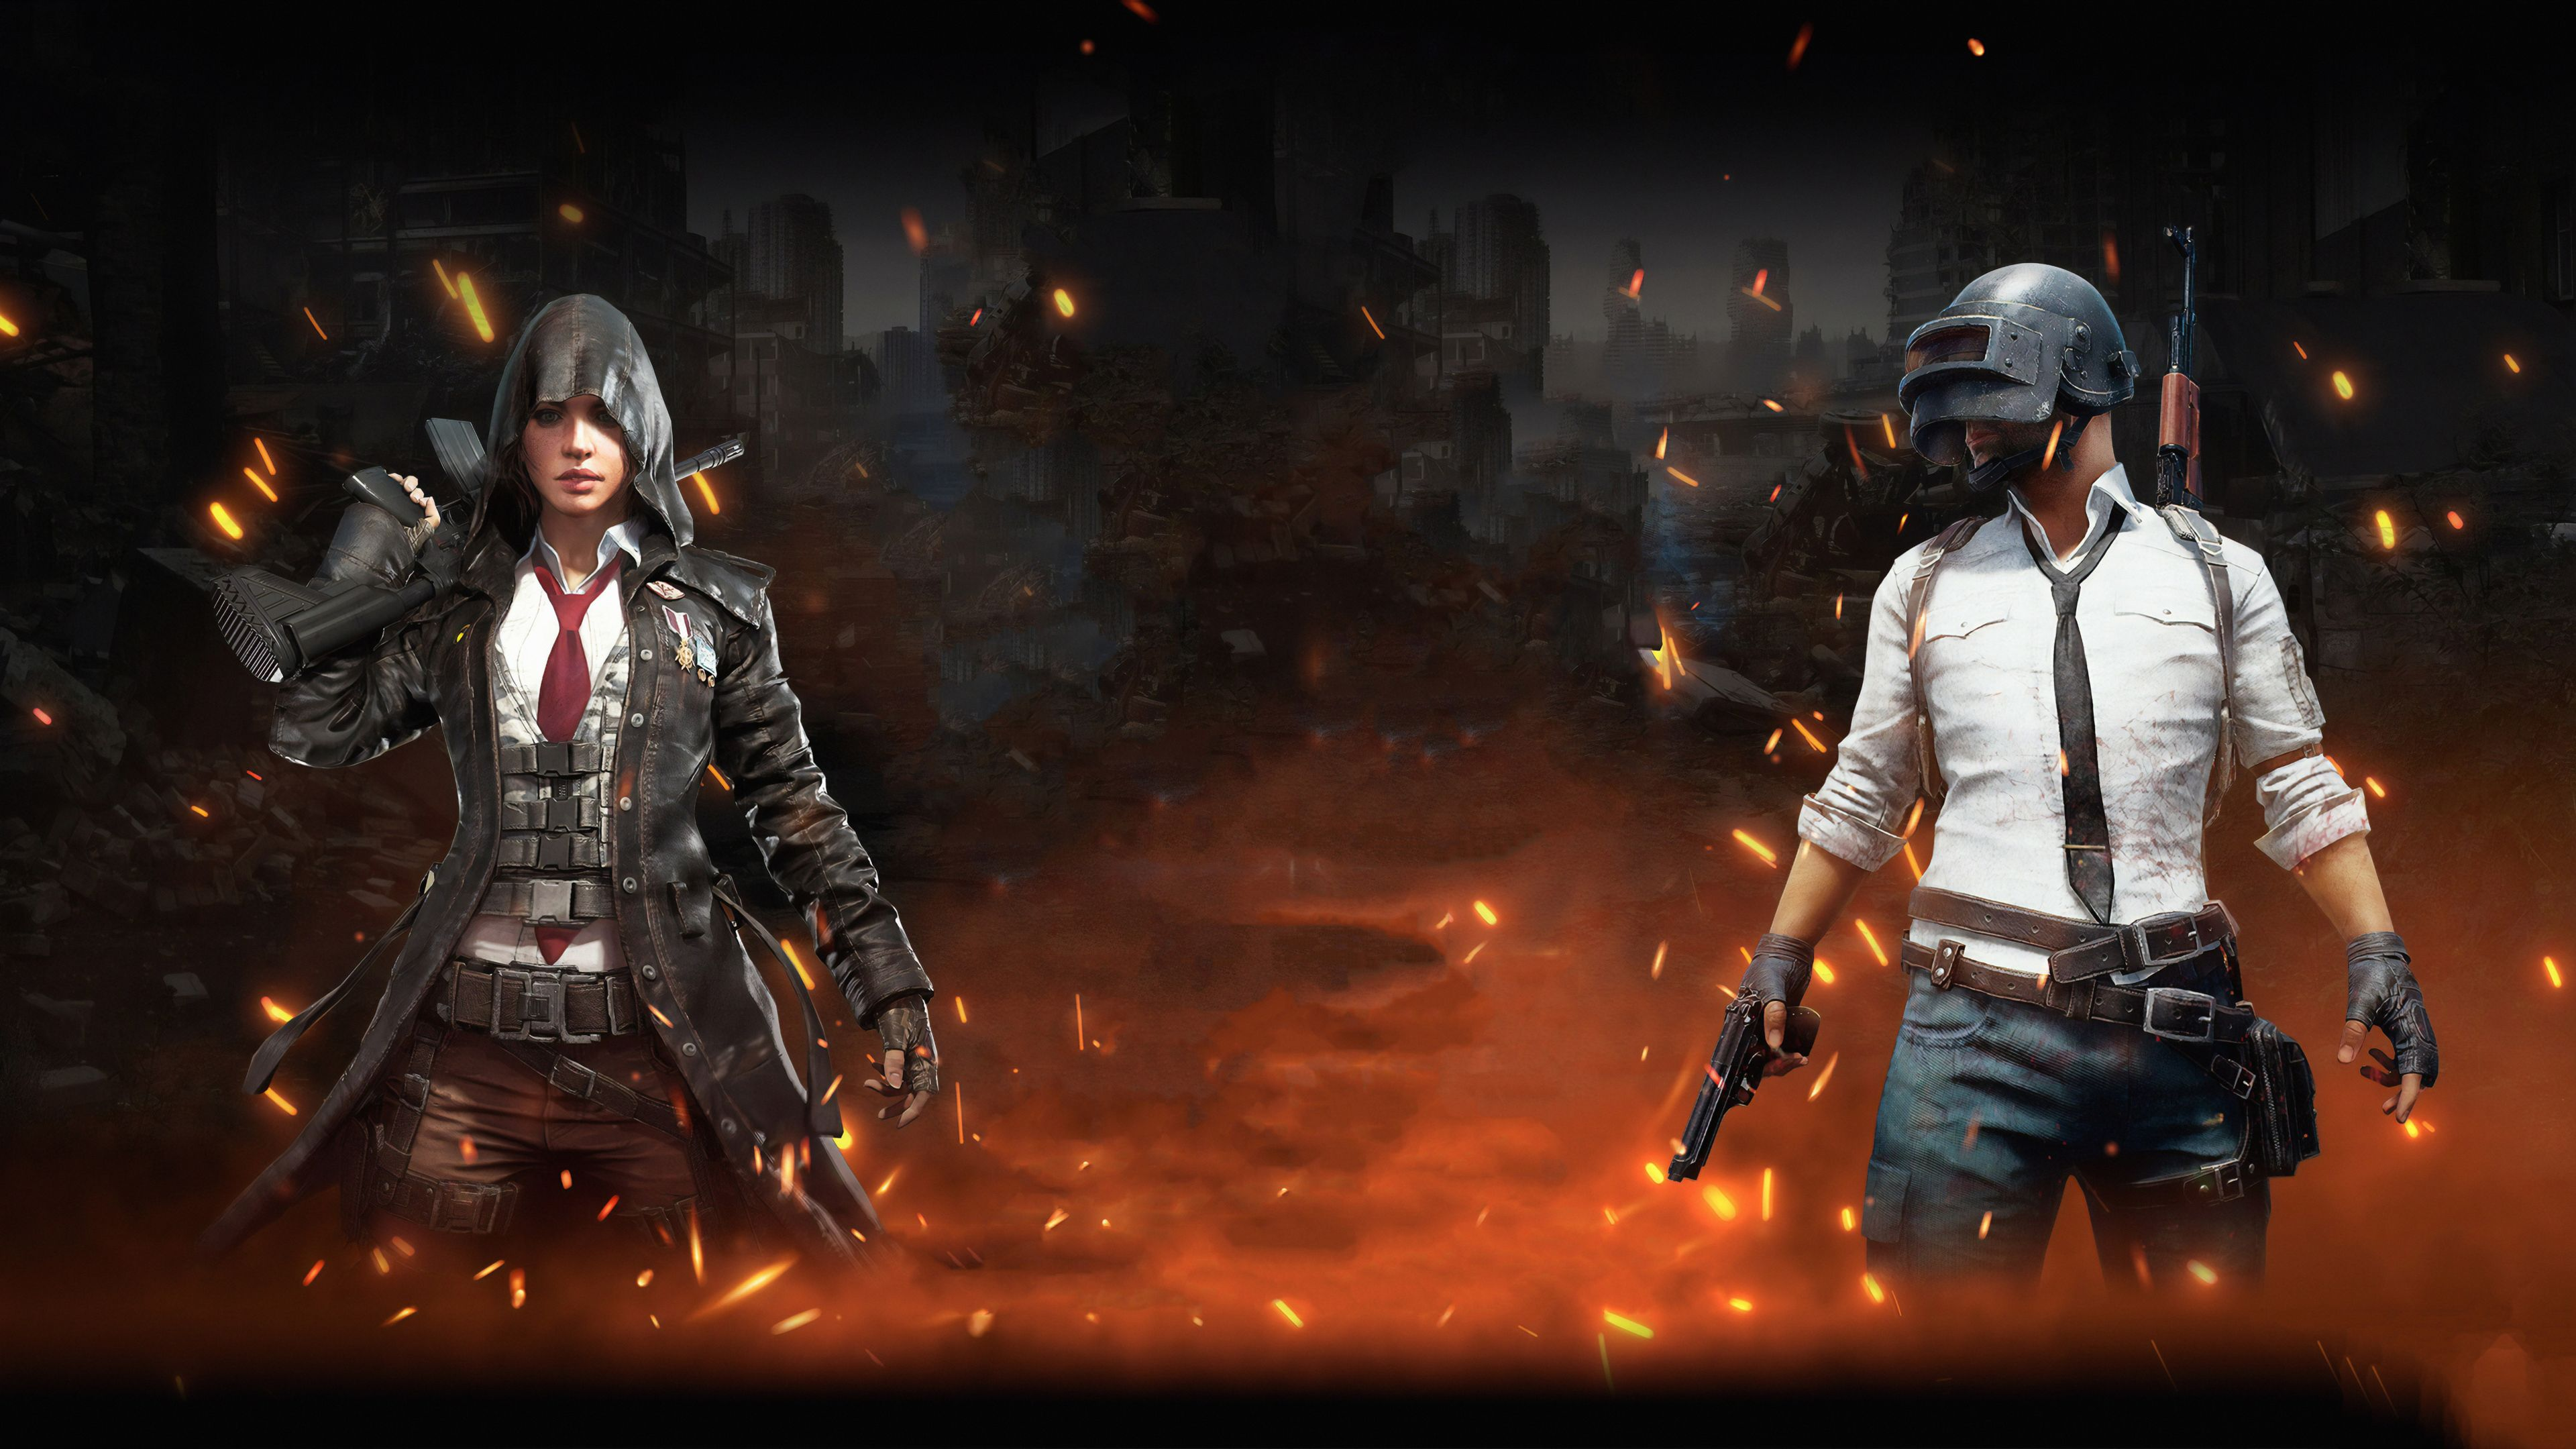 Pubg 2019 Game Pubg Wallpapers Ps Games Wallpapers Playerunknowns Battlegrounds Wallpapers Hd Wallpapers Gam Wallpaper Images Hd Ps Games Samsung Wallpaper